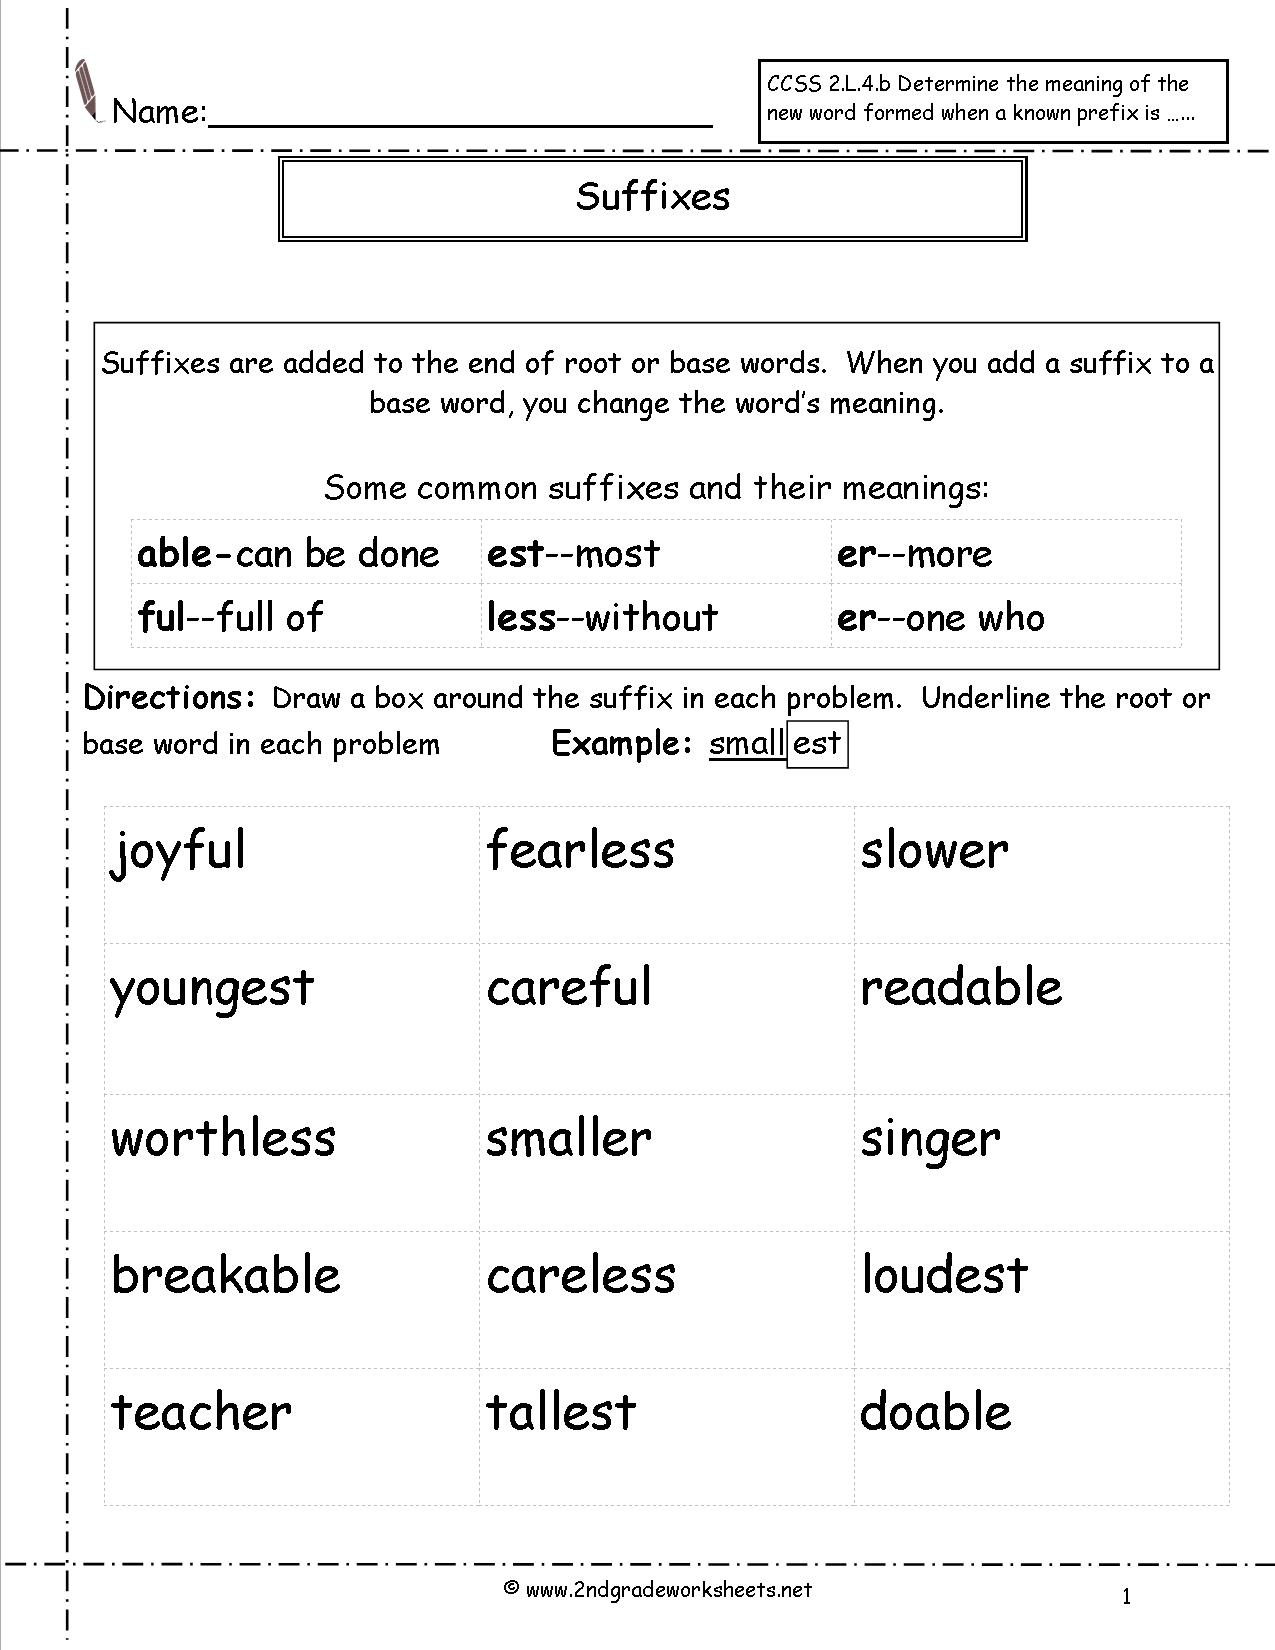 19 Best Images Of Root Words Prefix And Suffix Worksheets